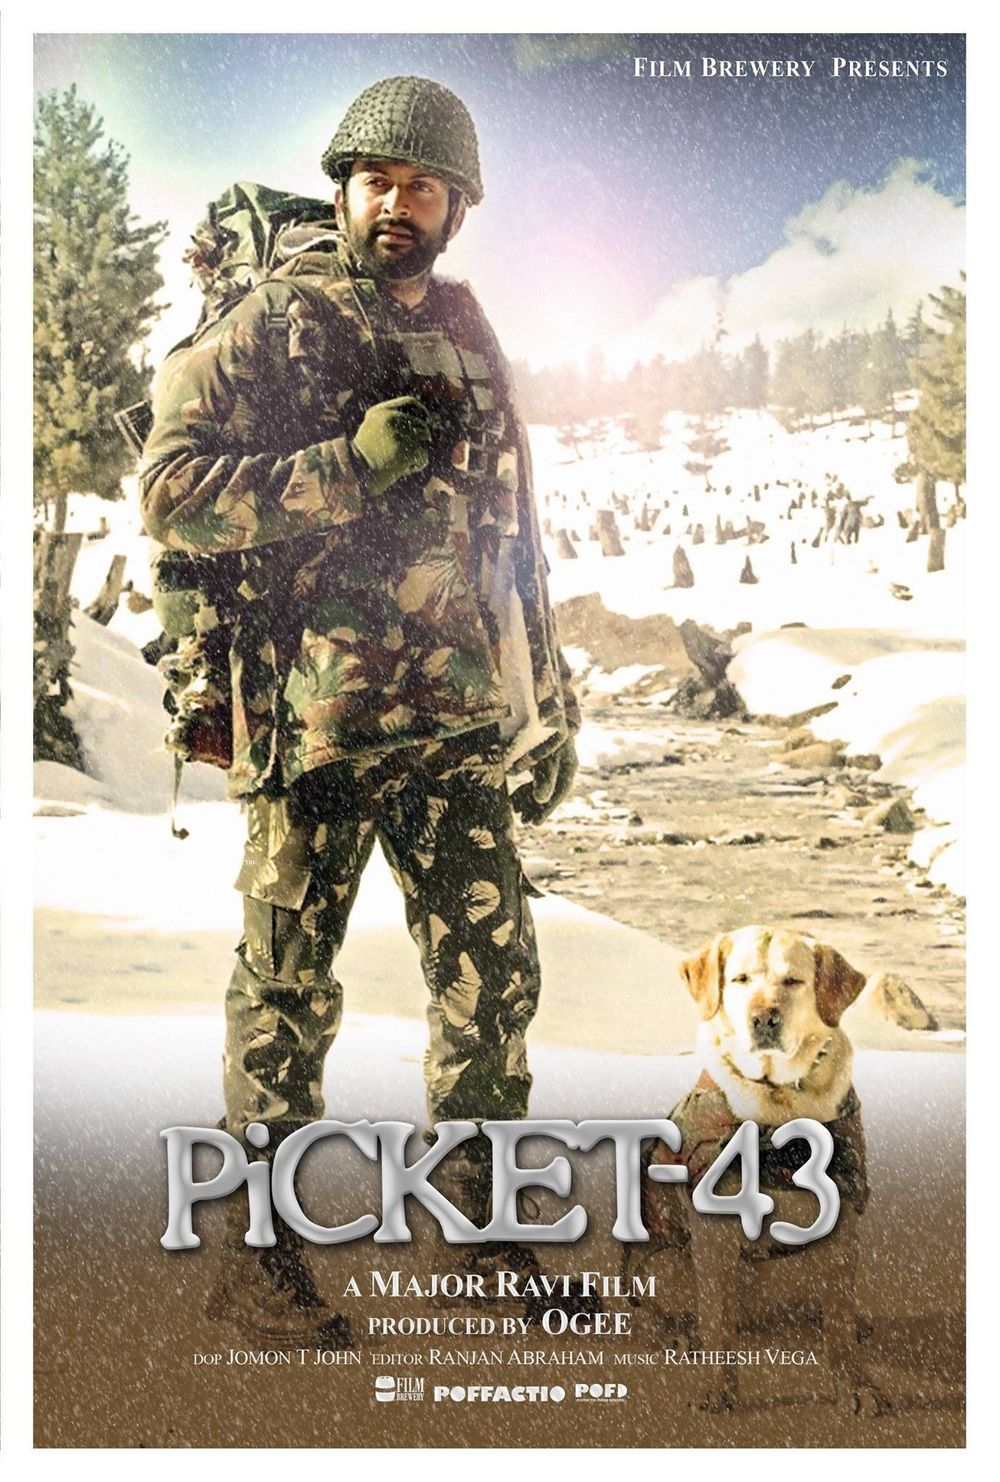 Picket - 43 Movie Review